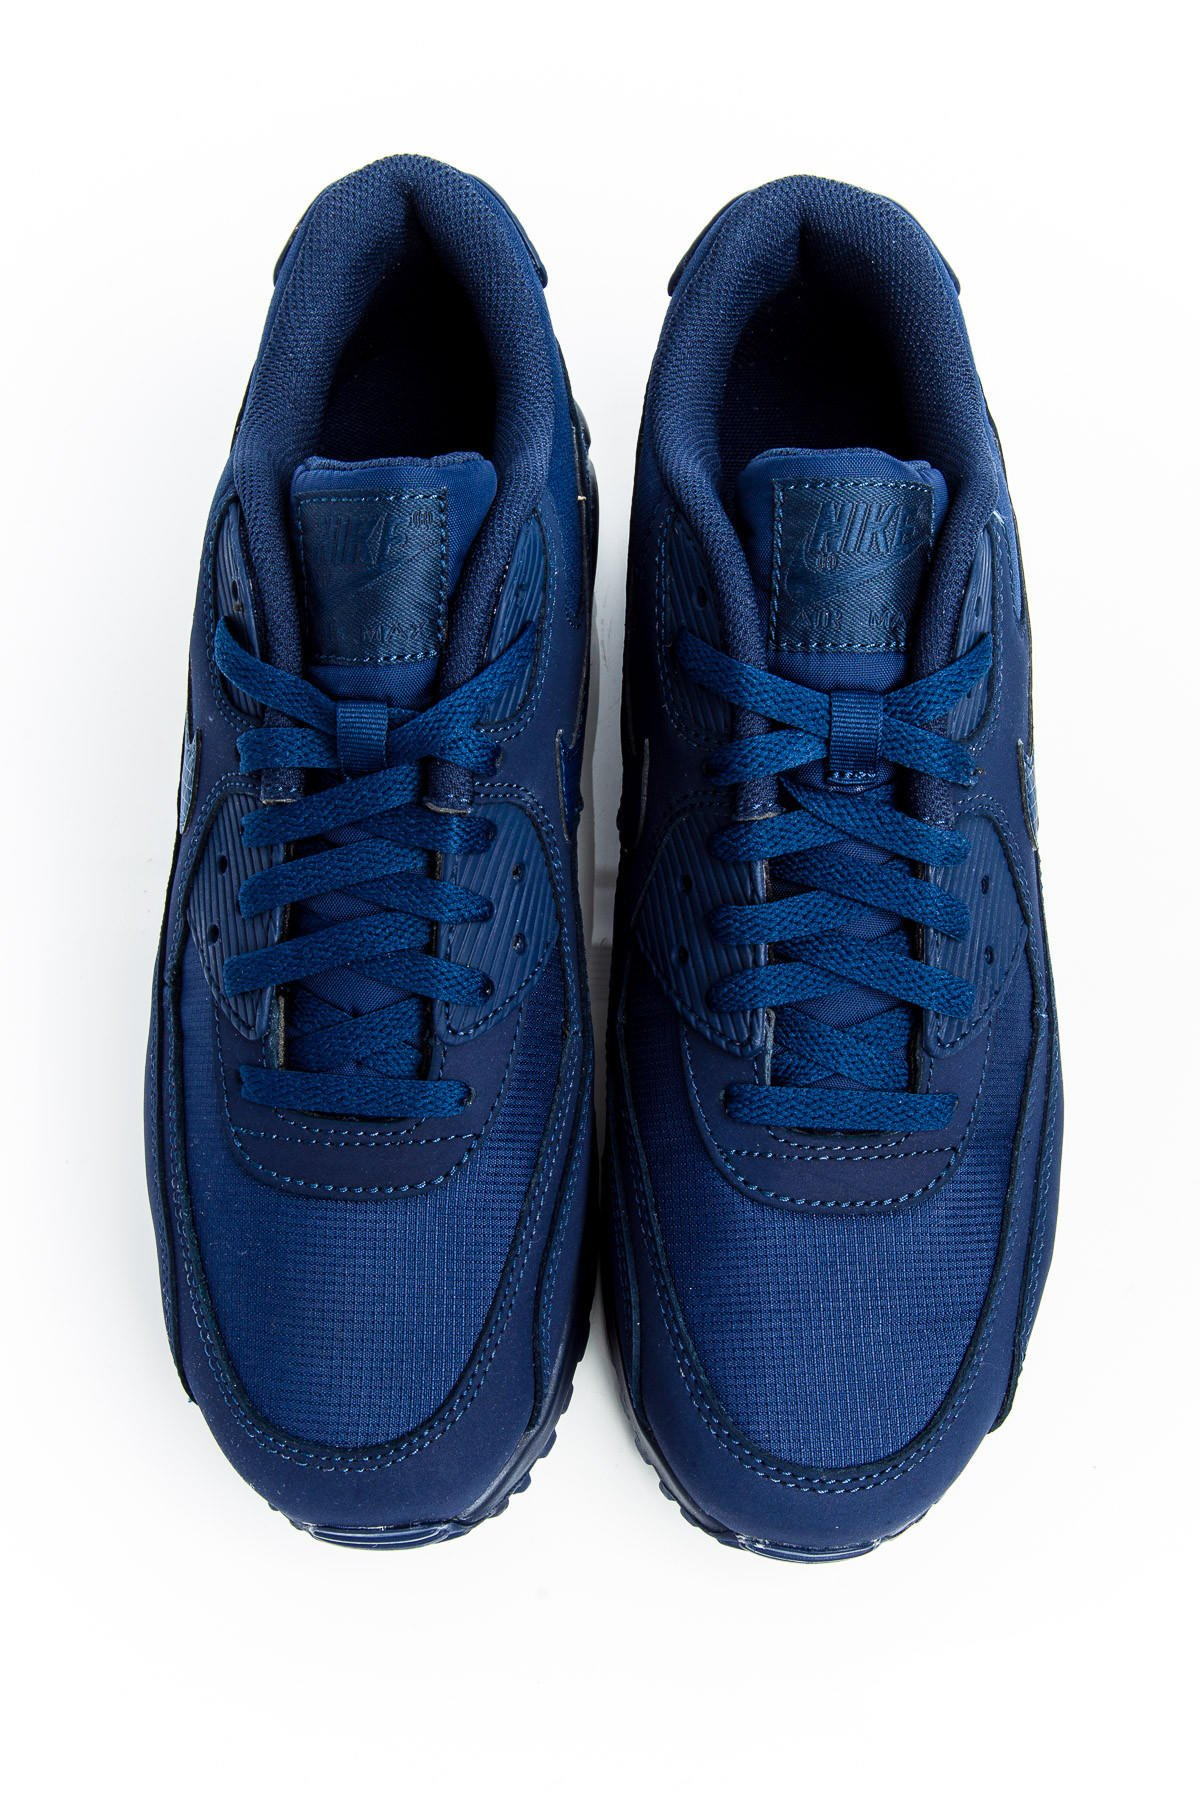 Nike Air Max 90 Essentail Midnight Navy from Probus  e0dcbbd22718